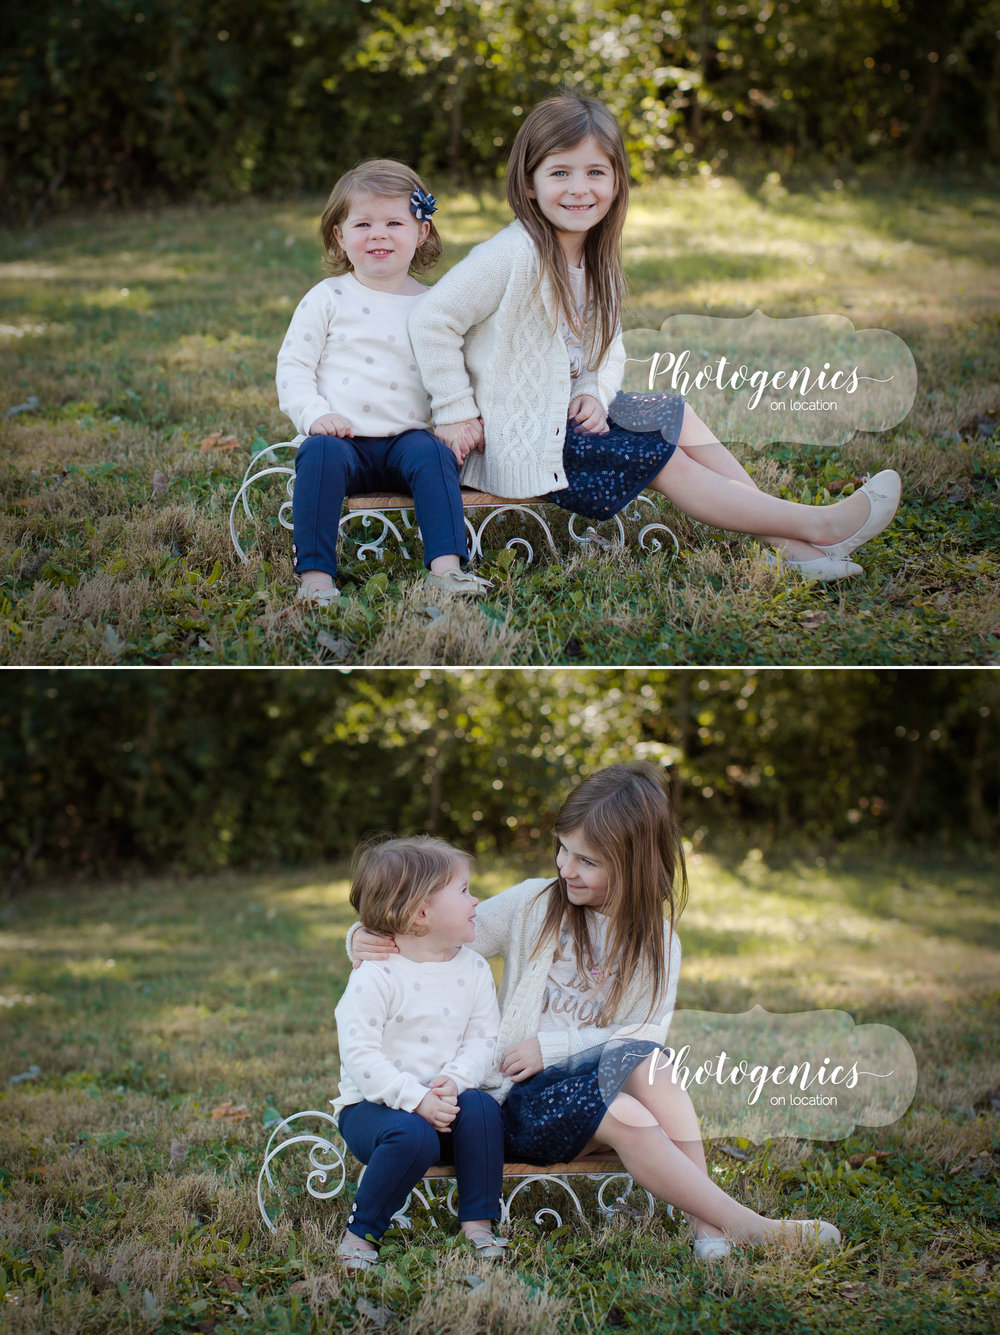 sisters_candid_photography_children_fall_ideas 2.jpg